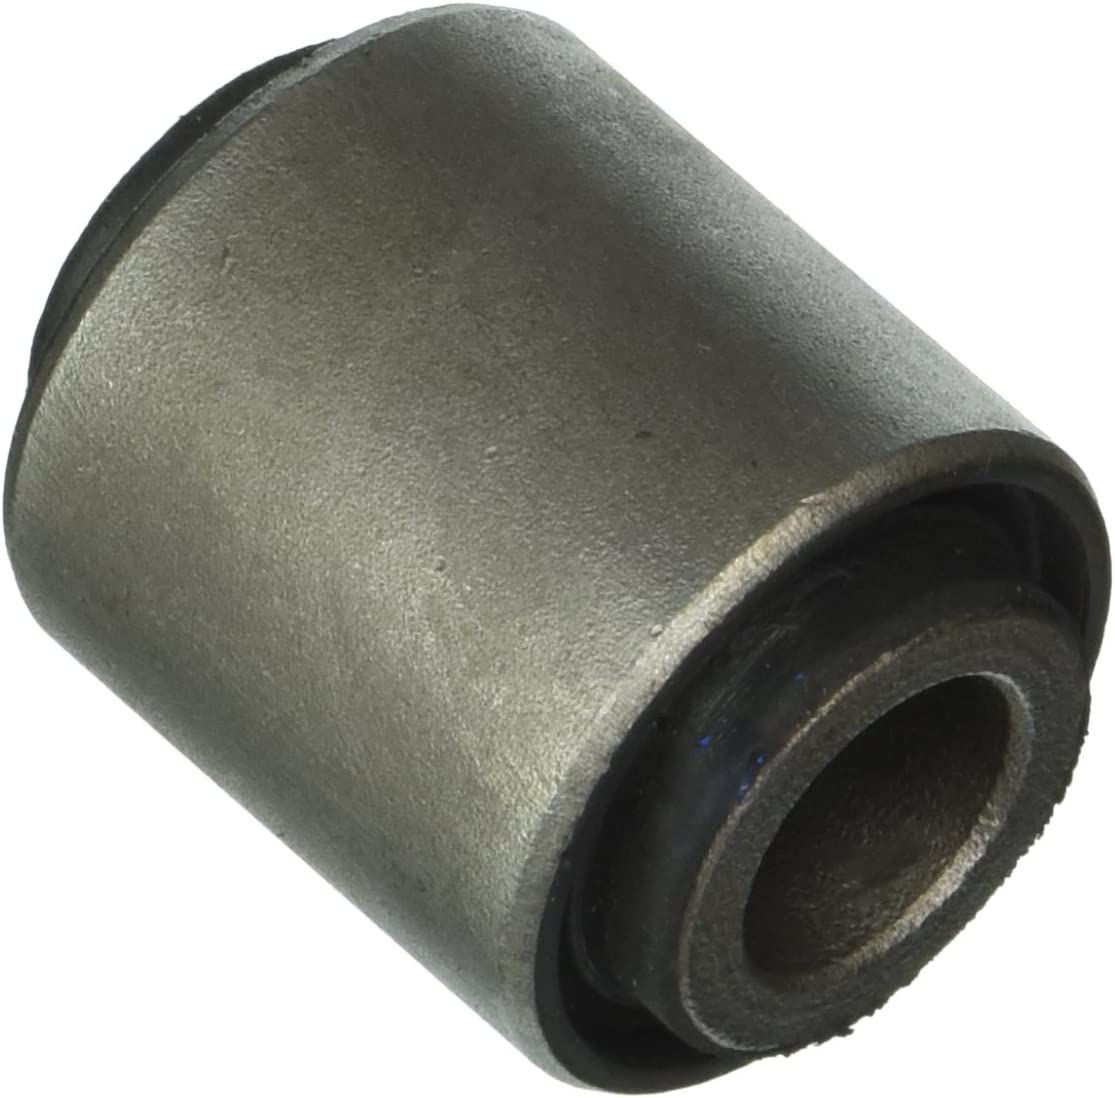 Arm Bushing 4870660040 For Toyota Febest for Rear Track Control Rod